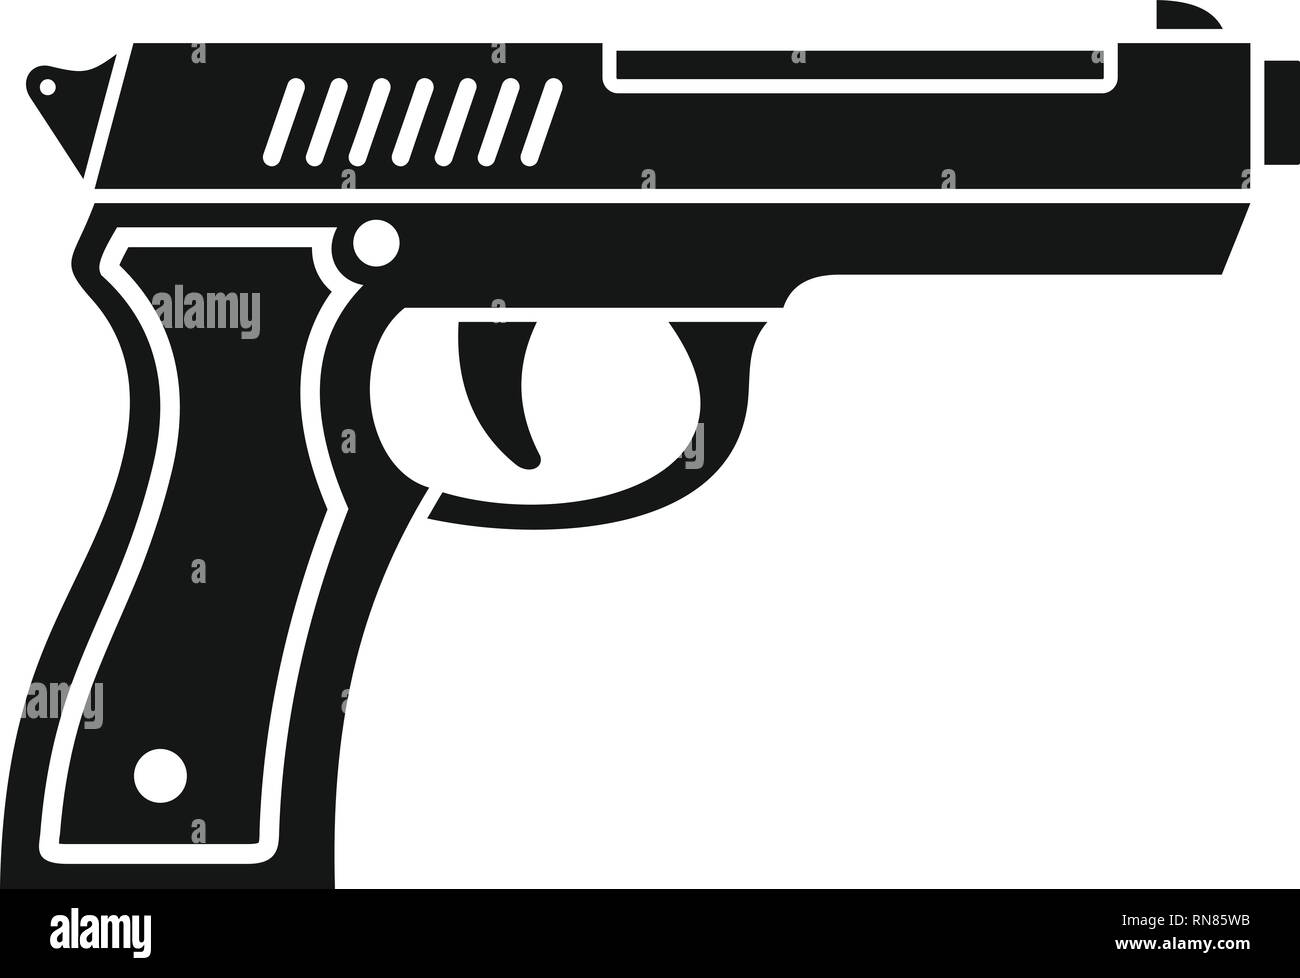 police pistol icon simple illustration of police pistol vector icon for web design isolated on white background stock vector image art alamy https www alamy com police pistol icon simple illustration of police pistol vector icon for web design isolated on white background image236822807 html